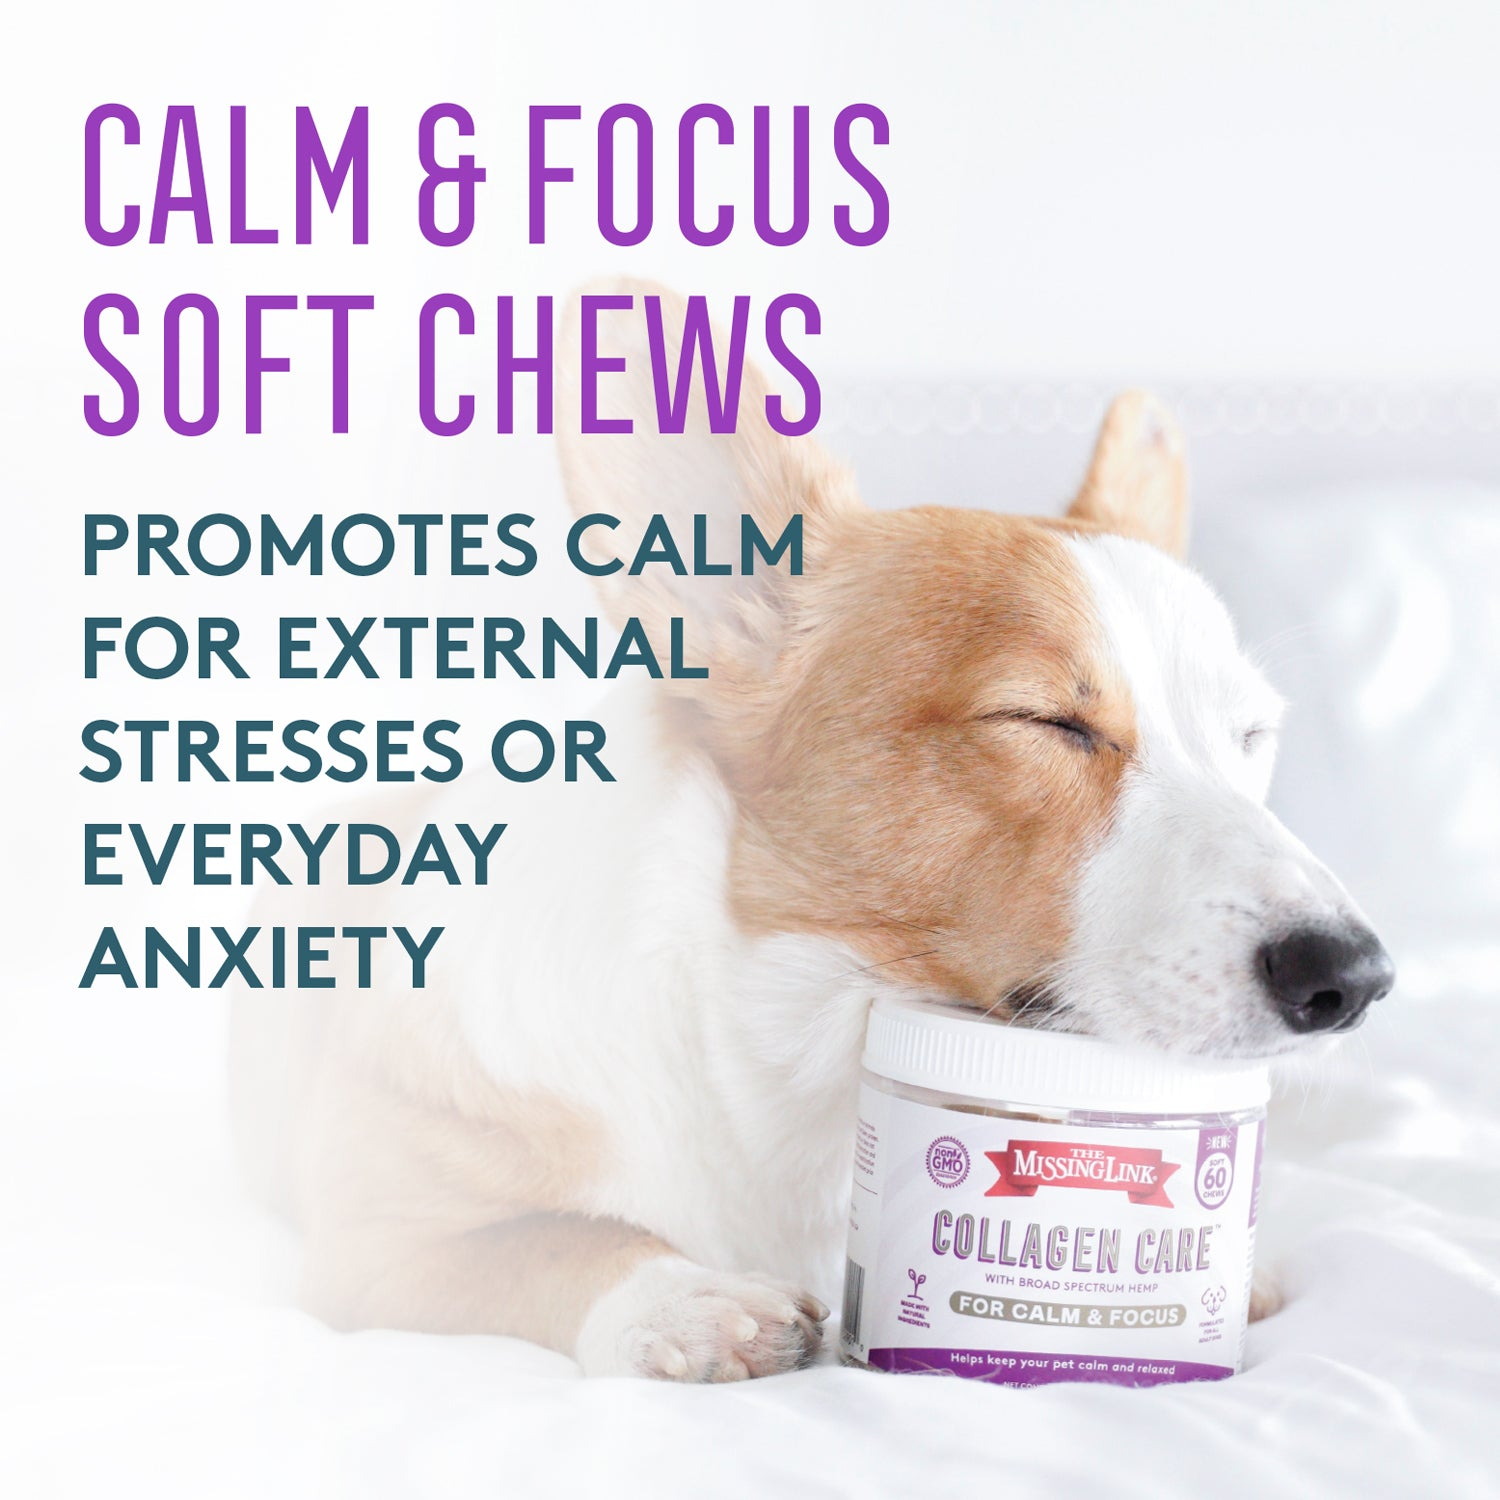 Collagen Care Calm & Focus dog